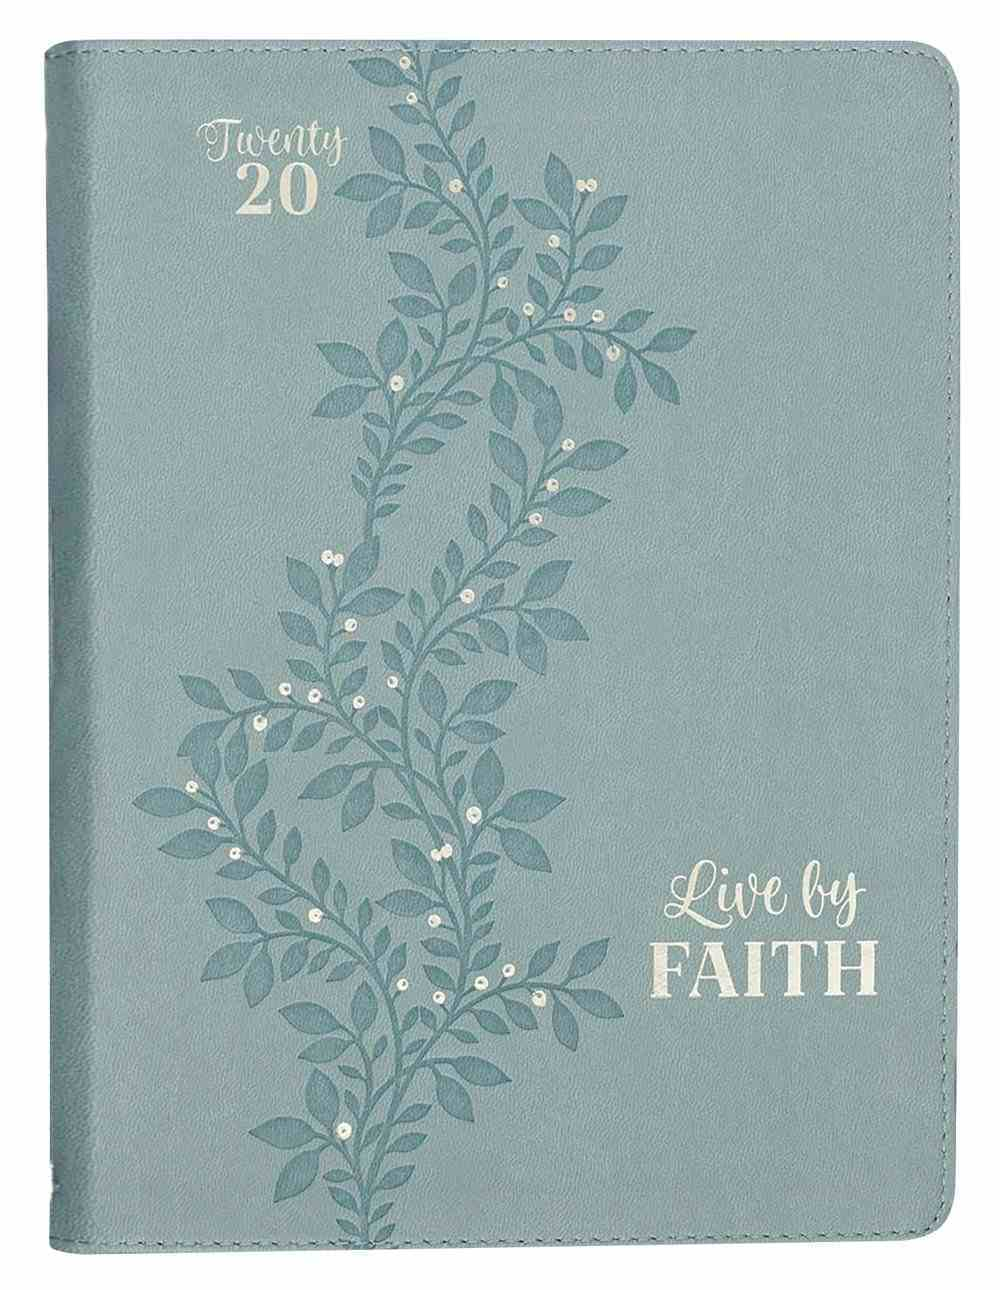 2020 Large 18-Month Diary/Planner: Live By Faith, Blue Vine/Silver Imitation Leather